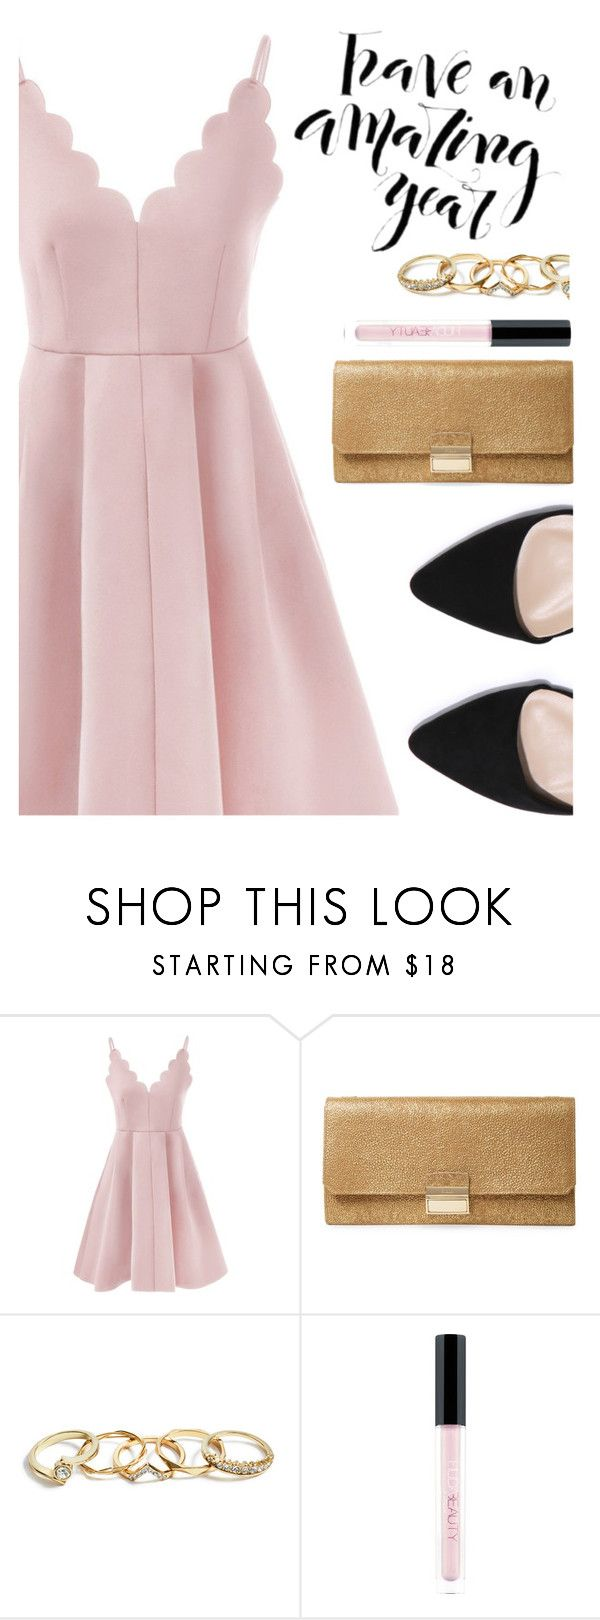 """Happy New year!"" by jackandalice ❤ liked on Polyvore featuring Furla, GUESS and Huda Beauty"